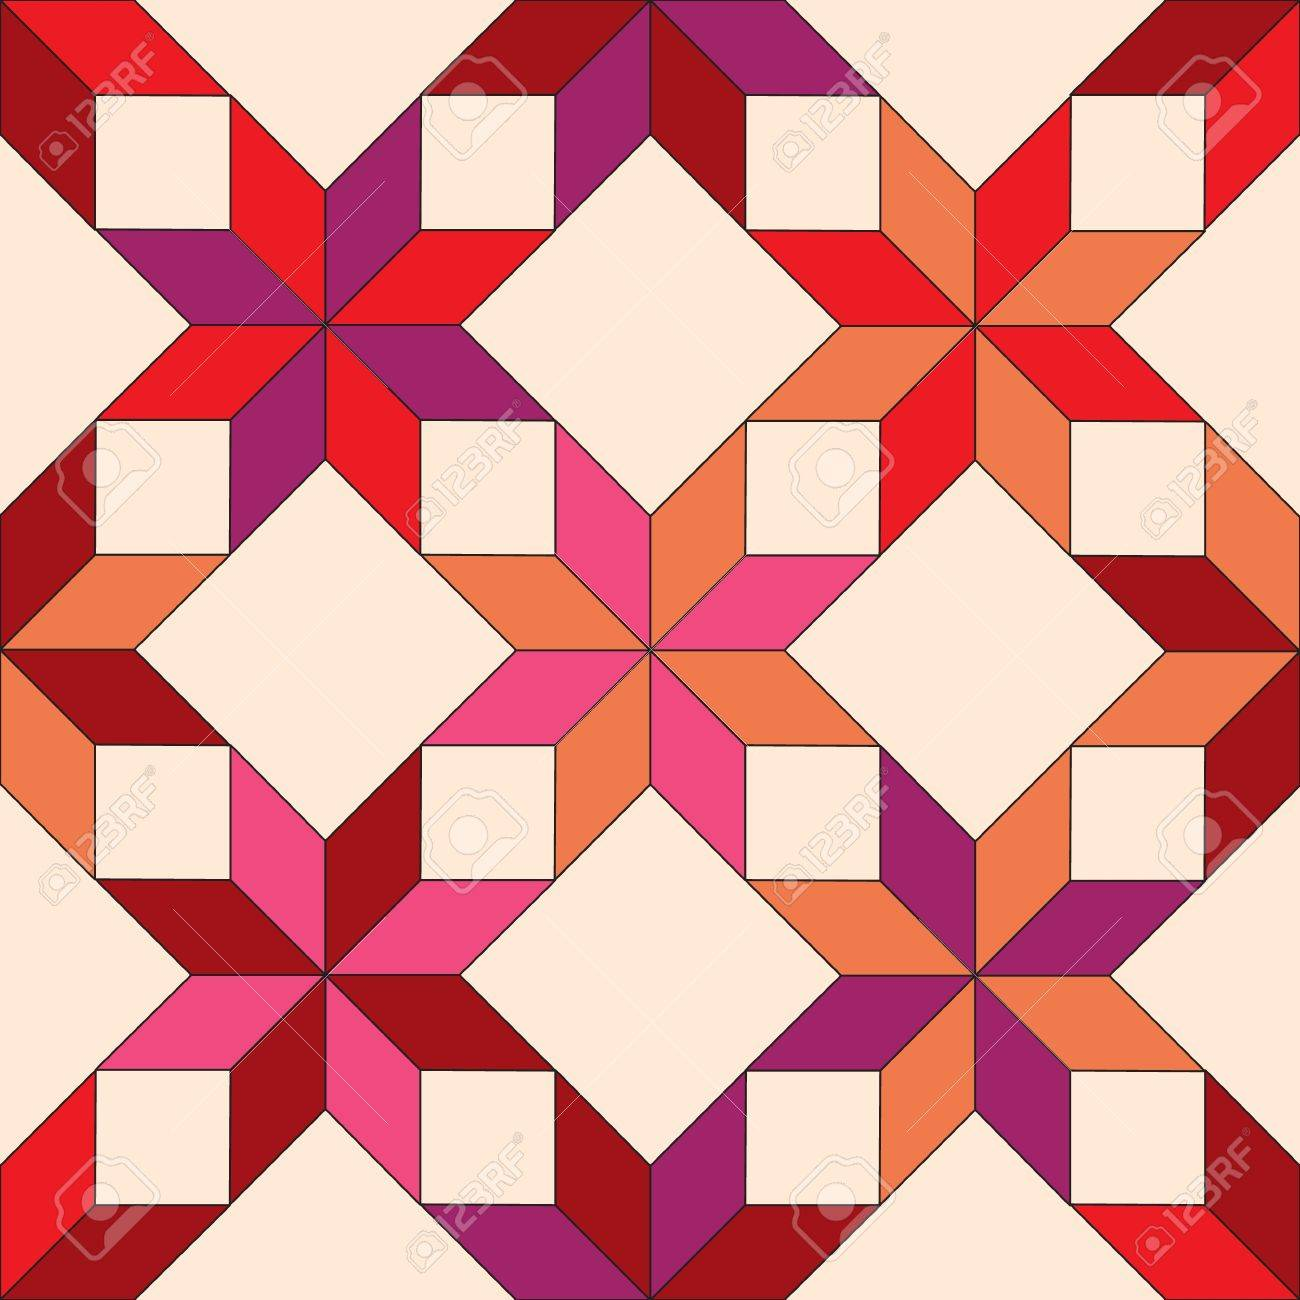 quilted star shape fabric seamless pattern in shades of red